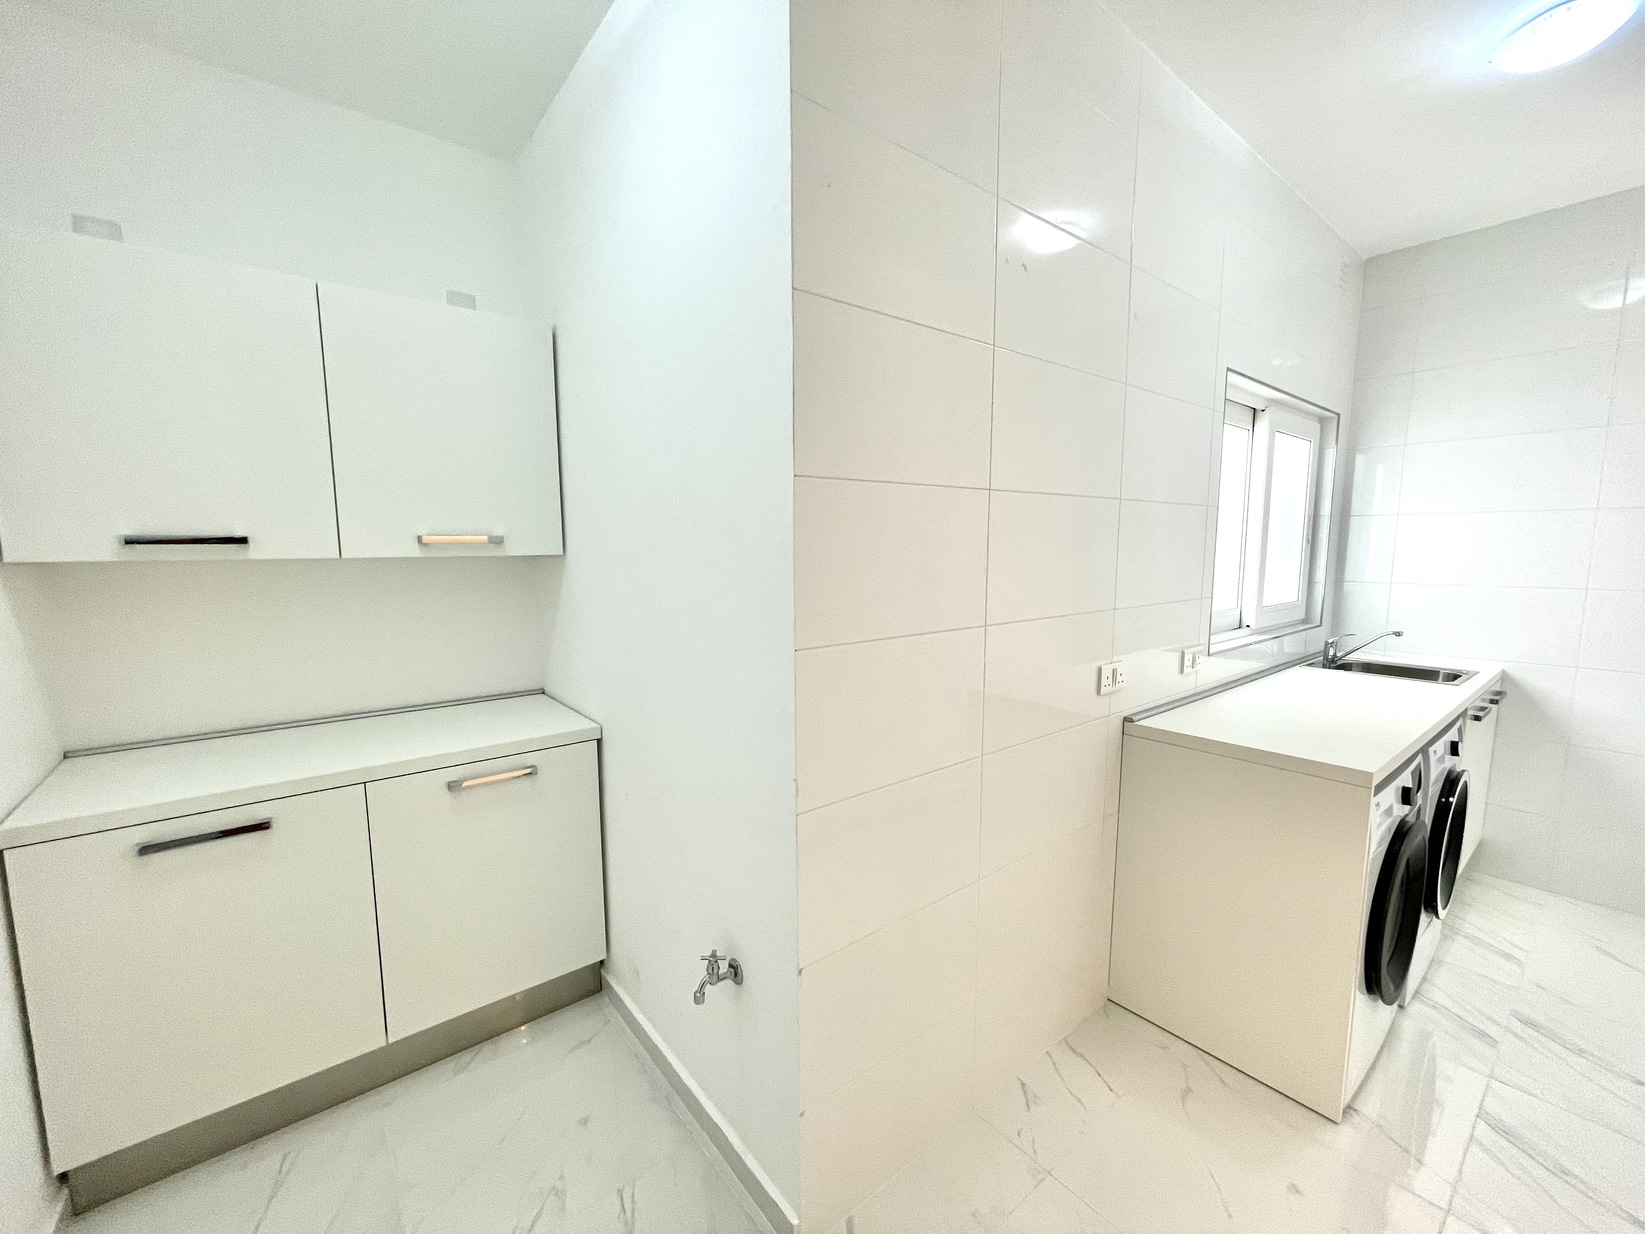 3 bed Apartment For Rent in Zejtun, Zejtun - thumb 19